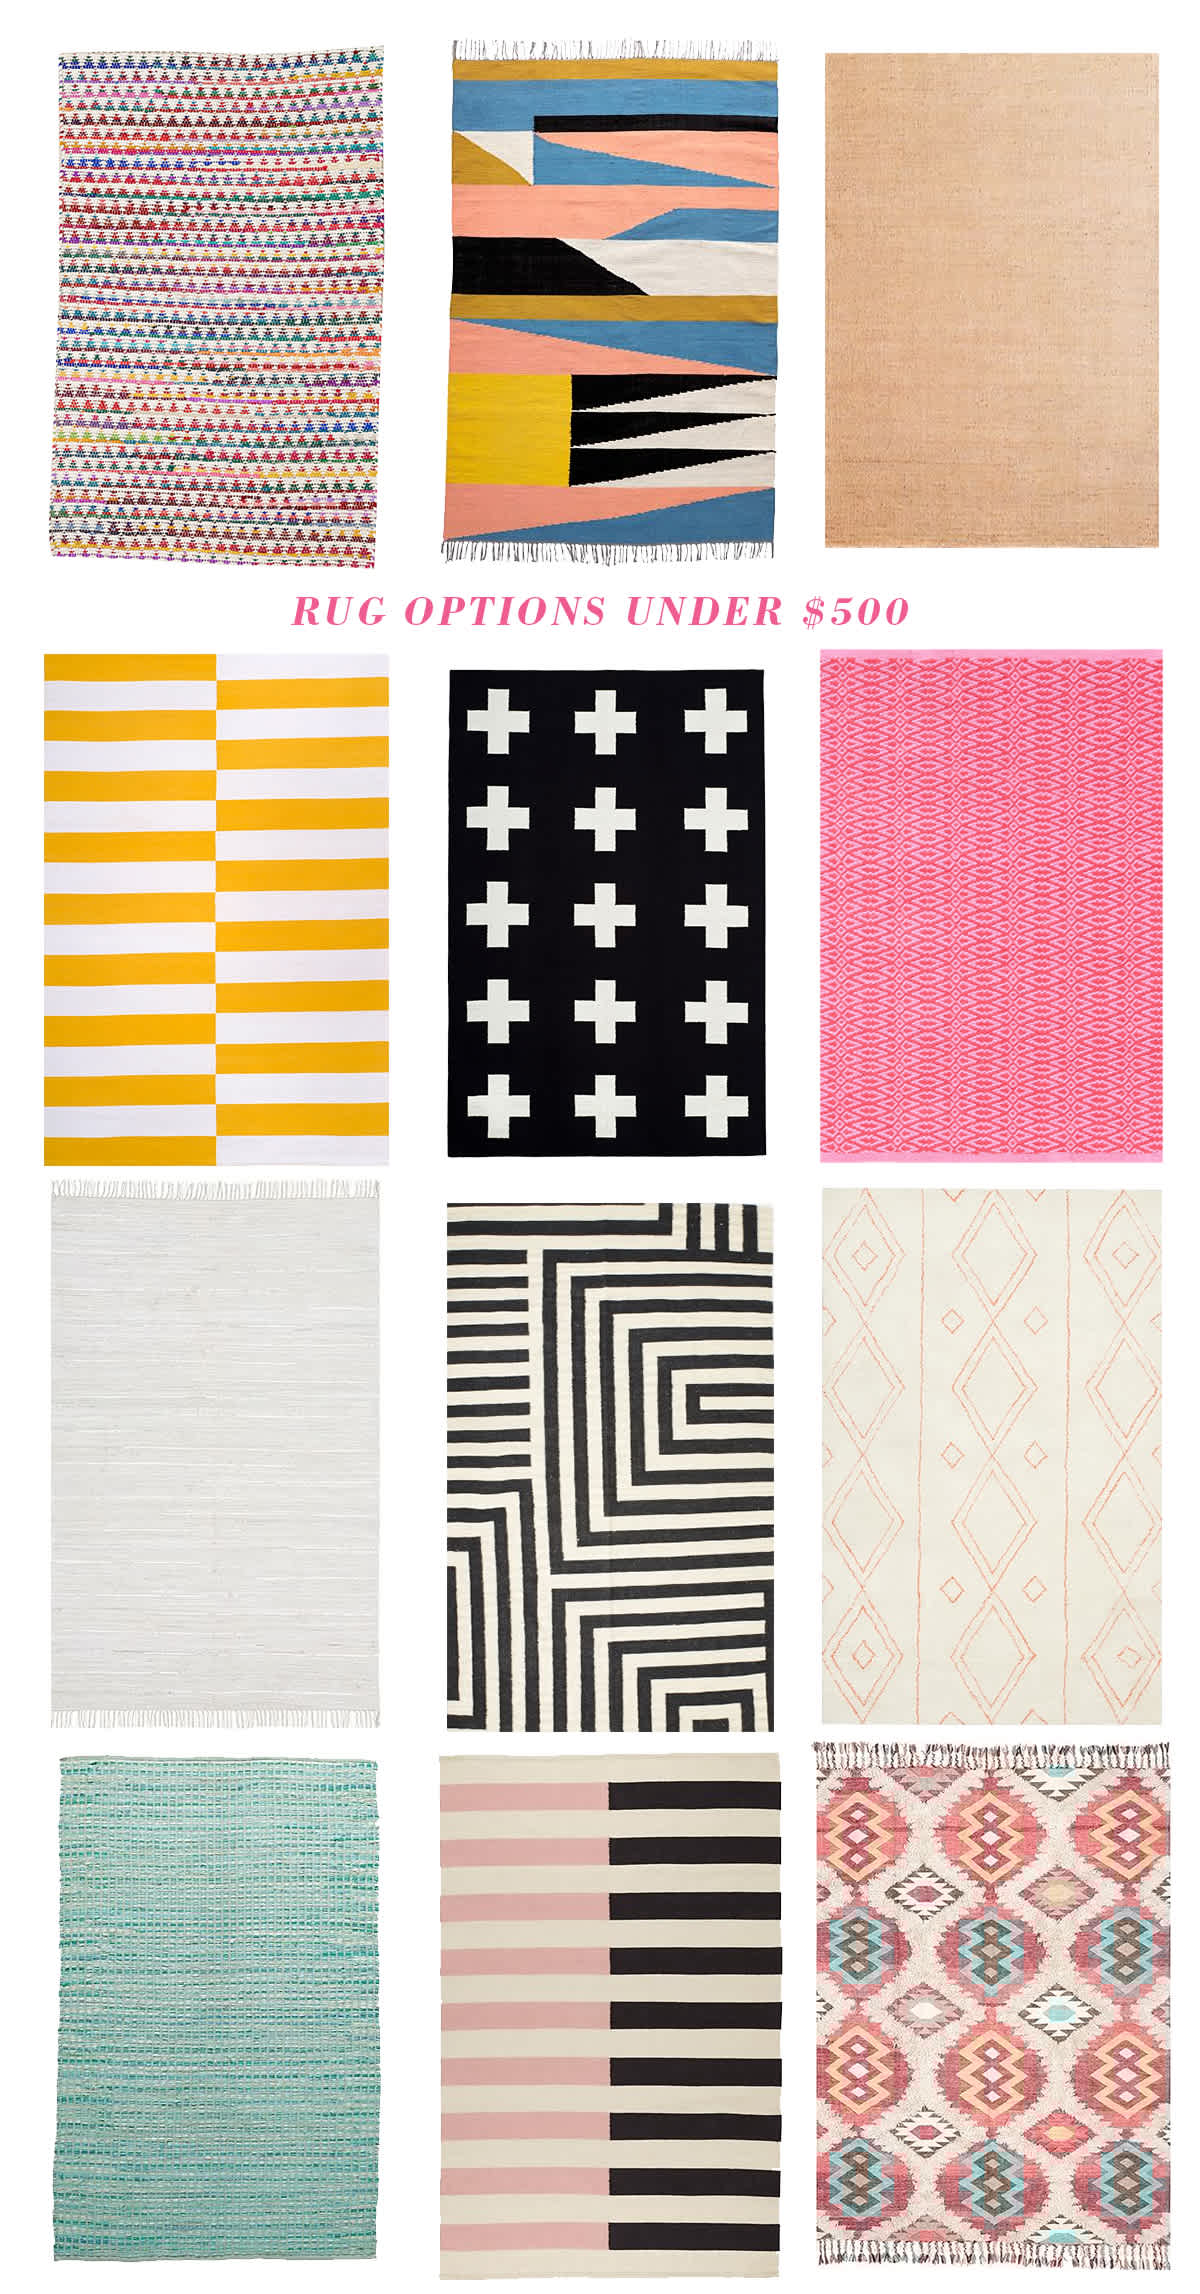 baby room rugs under $500